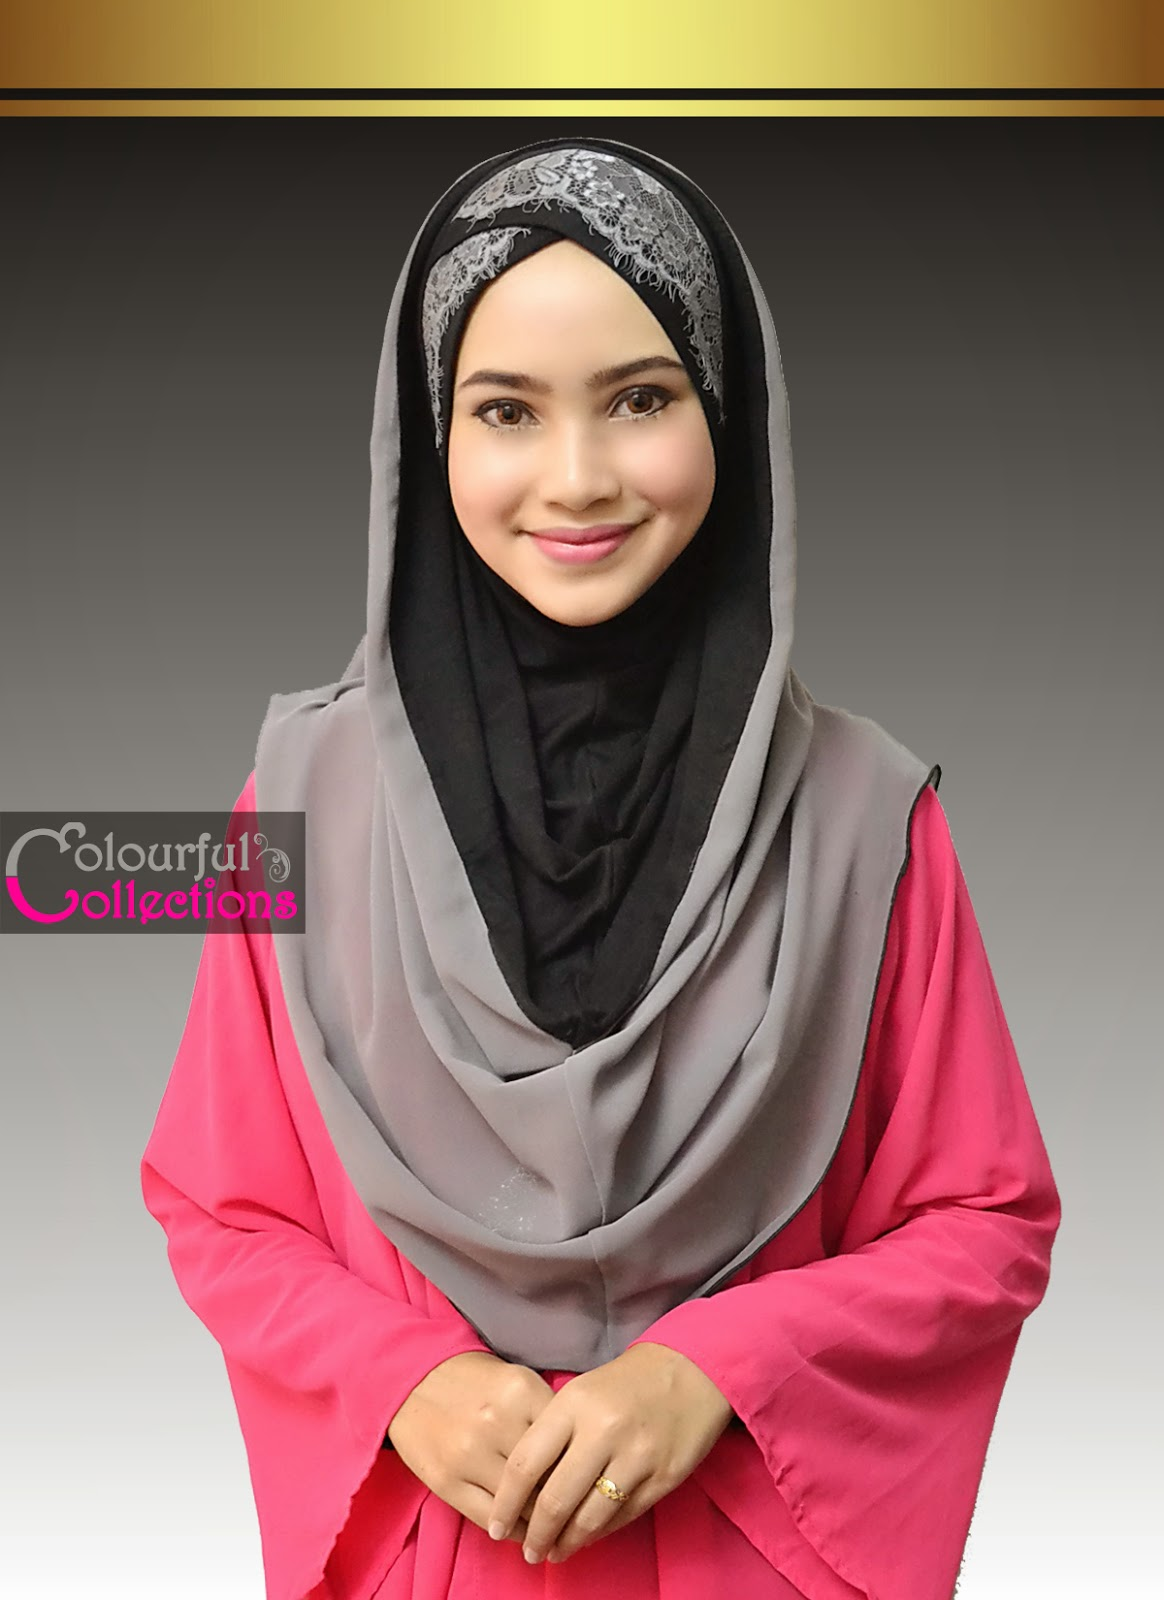 http://www.colourfulcollections.com/search/label/TUDUNG%20HOODIE%20NELLY